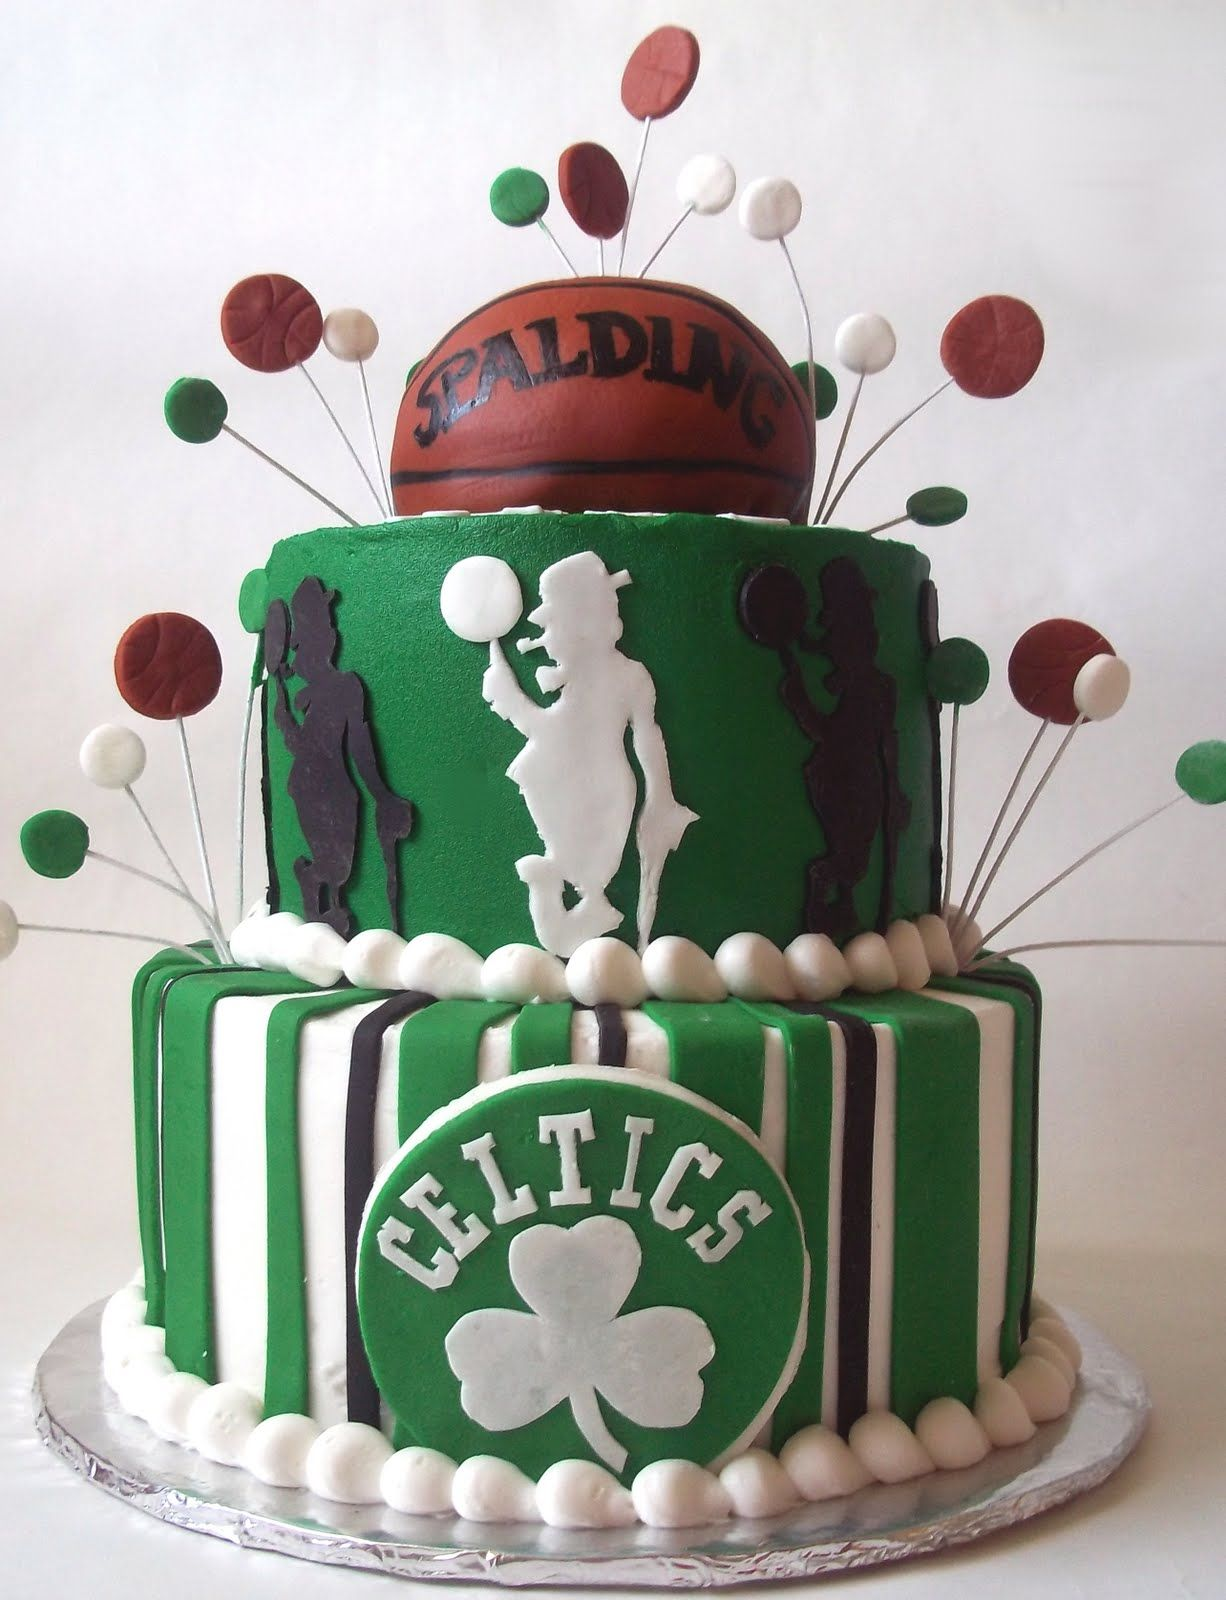 Tremendous Celtics With Images Basketball Cake Custom Cakes Sport Cakes Personalised Birthday Cards Paralily Jamesorg